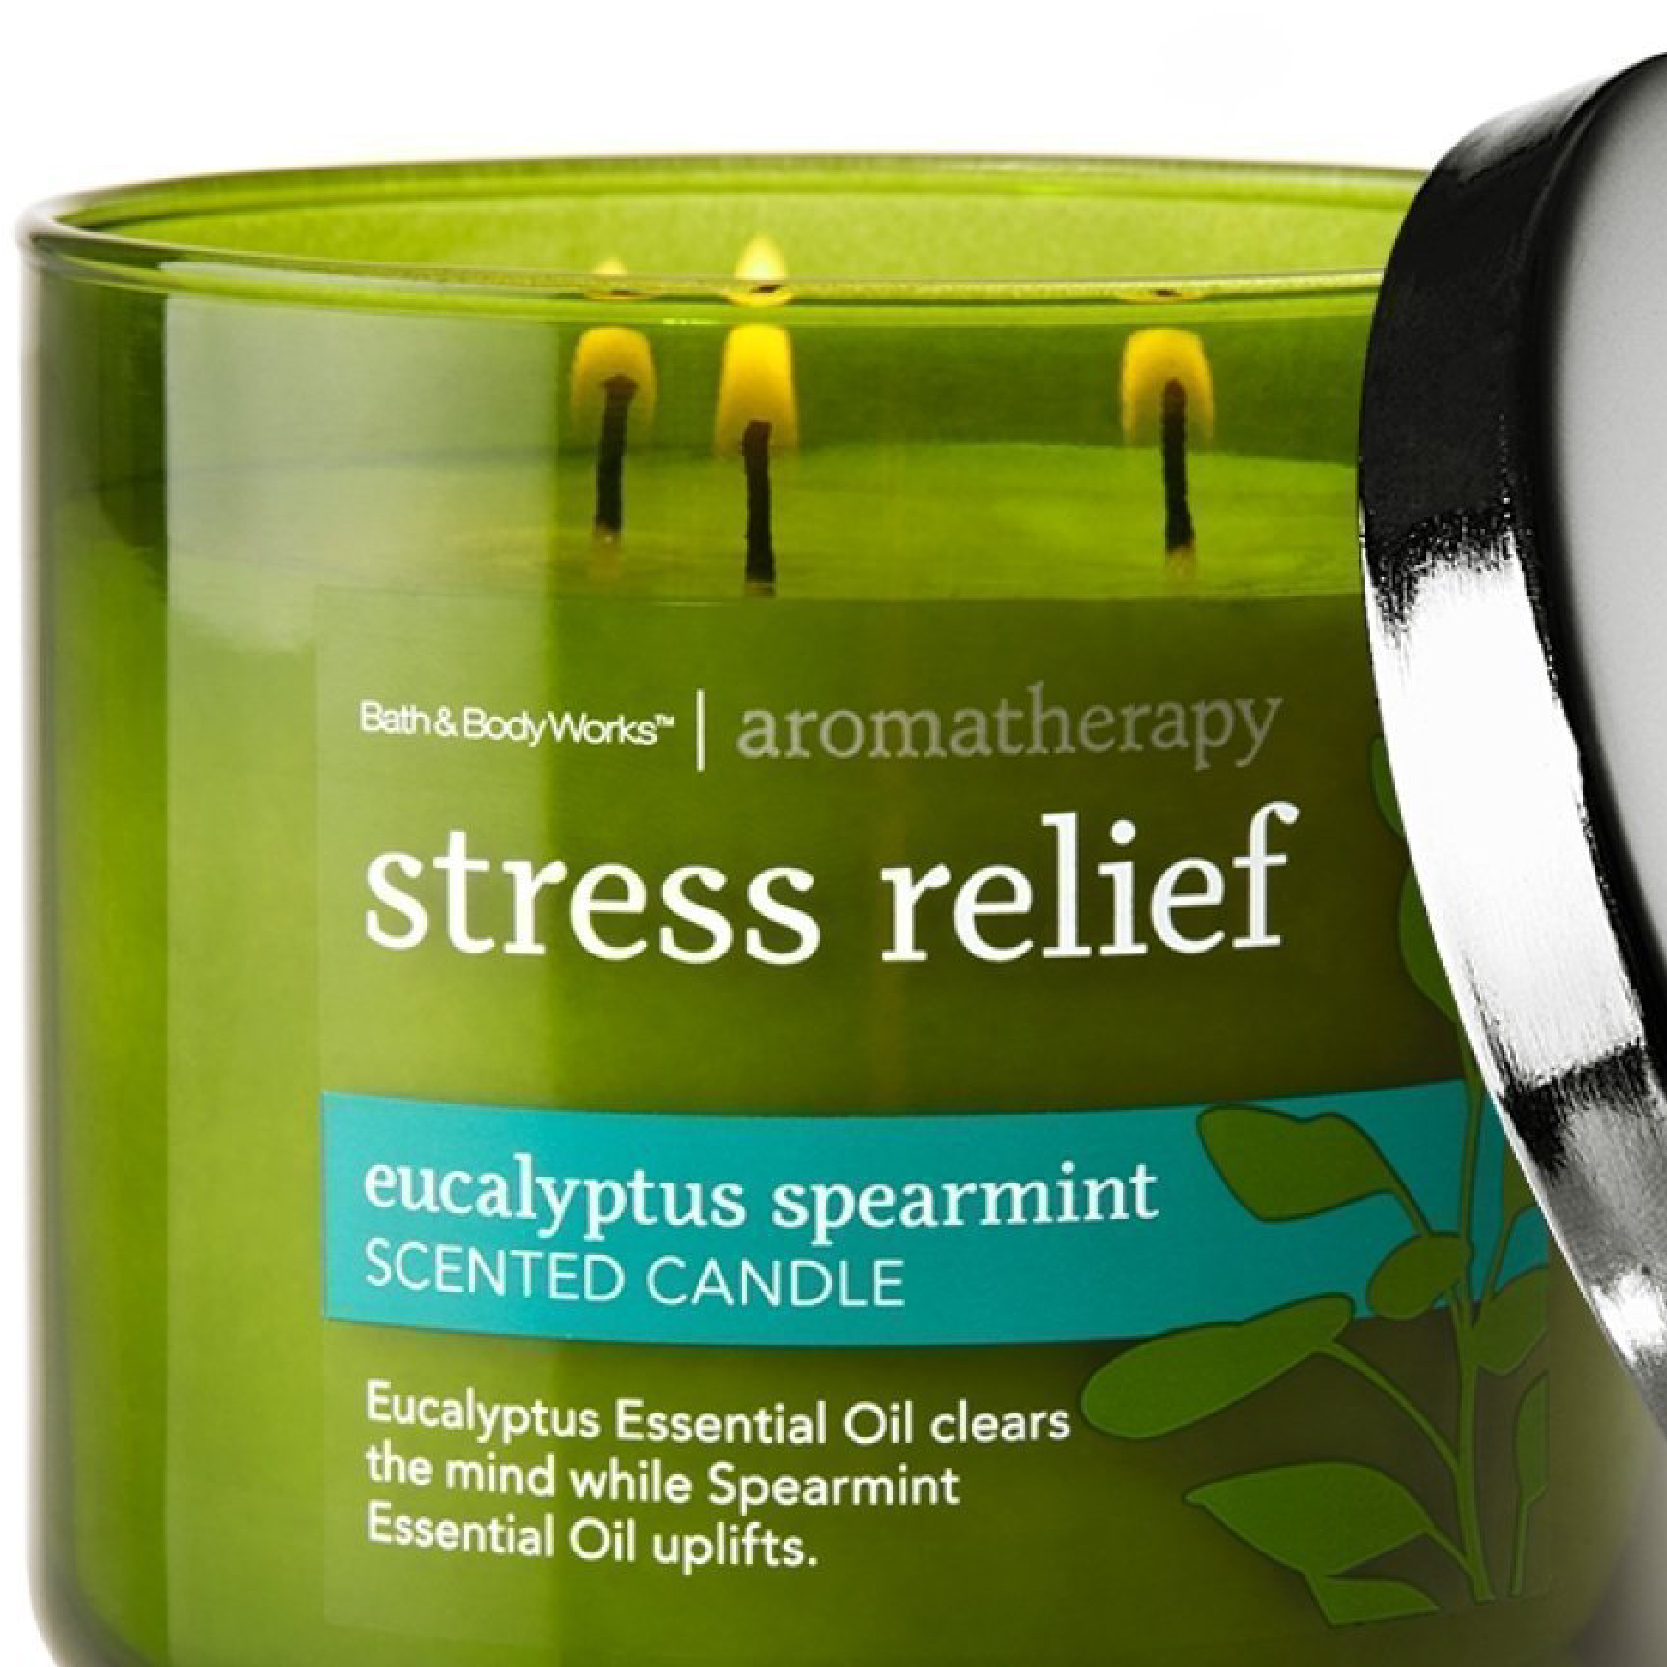 Bath and Body Works Eucalyptus Aromatherapy Candle